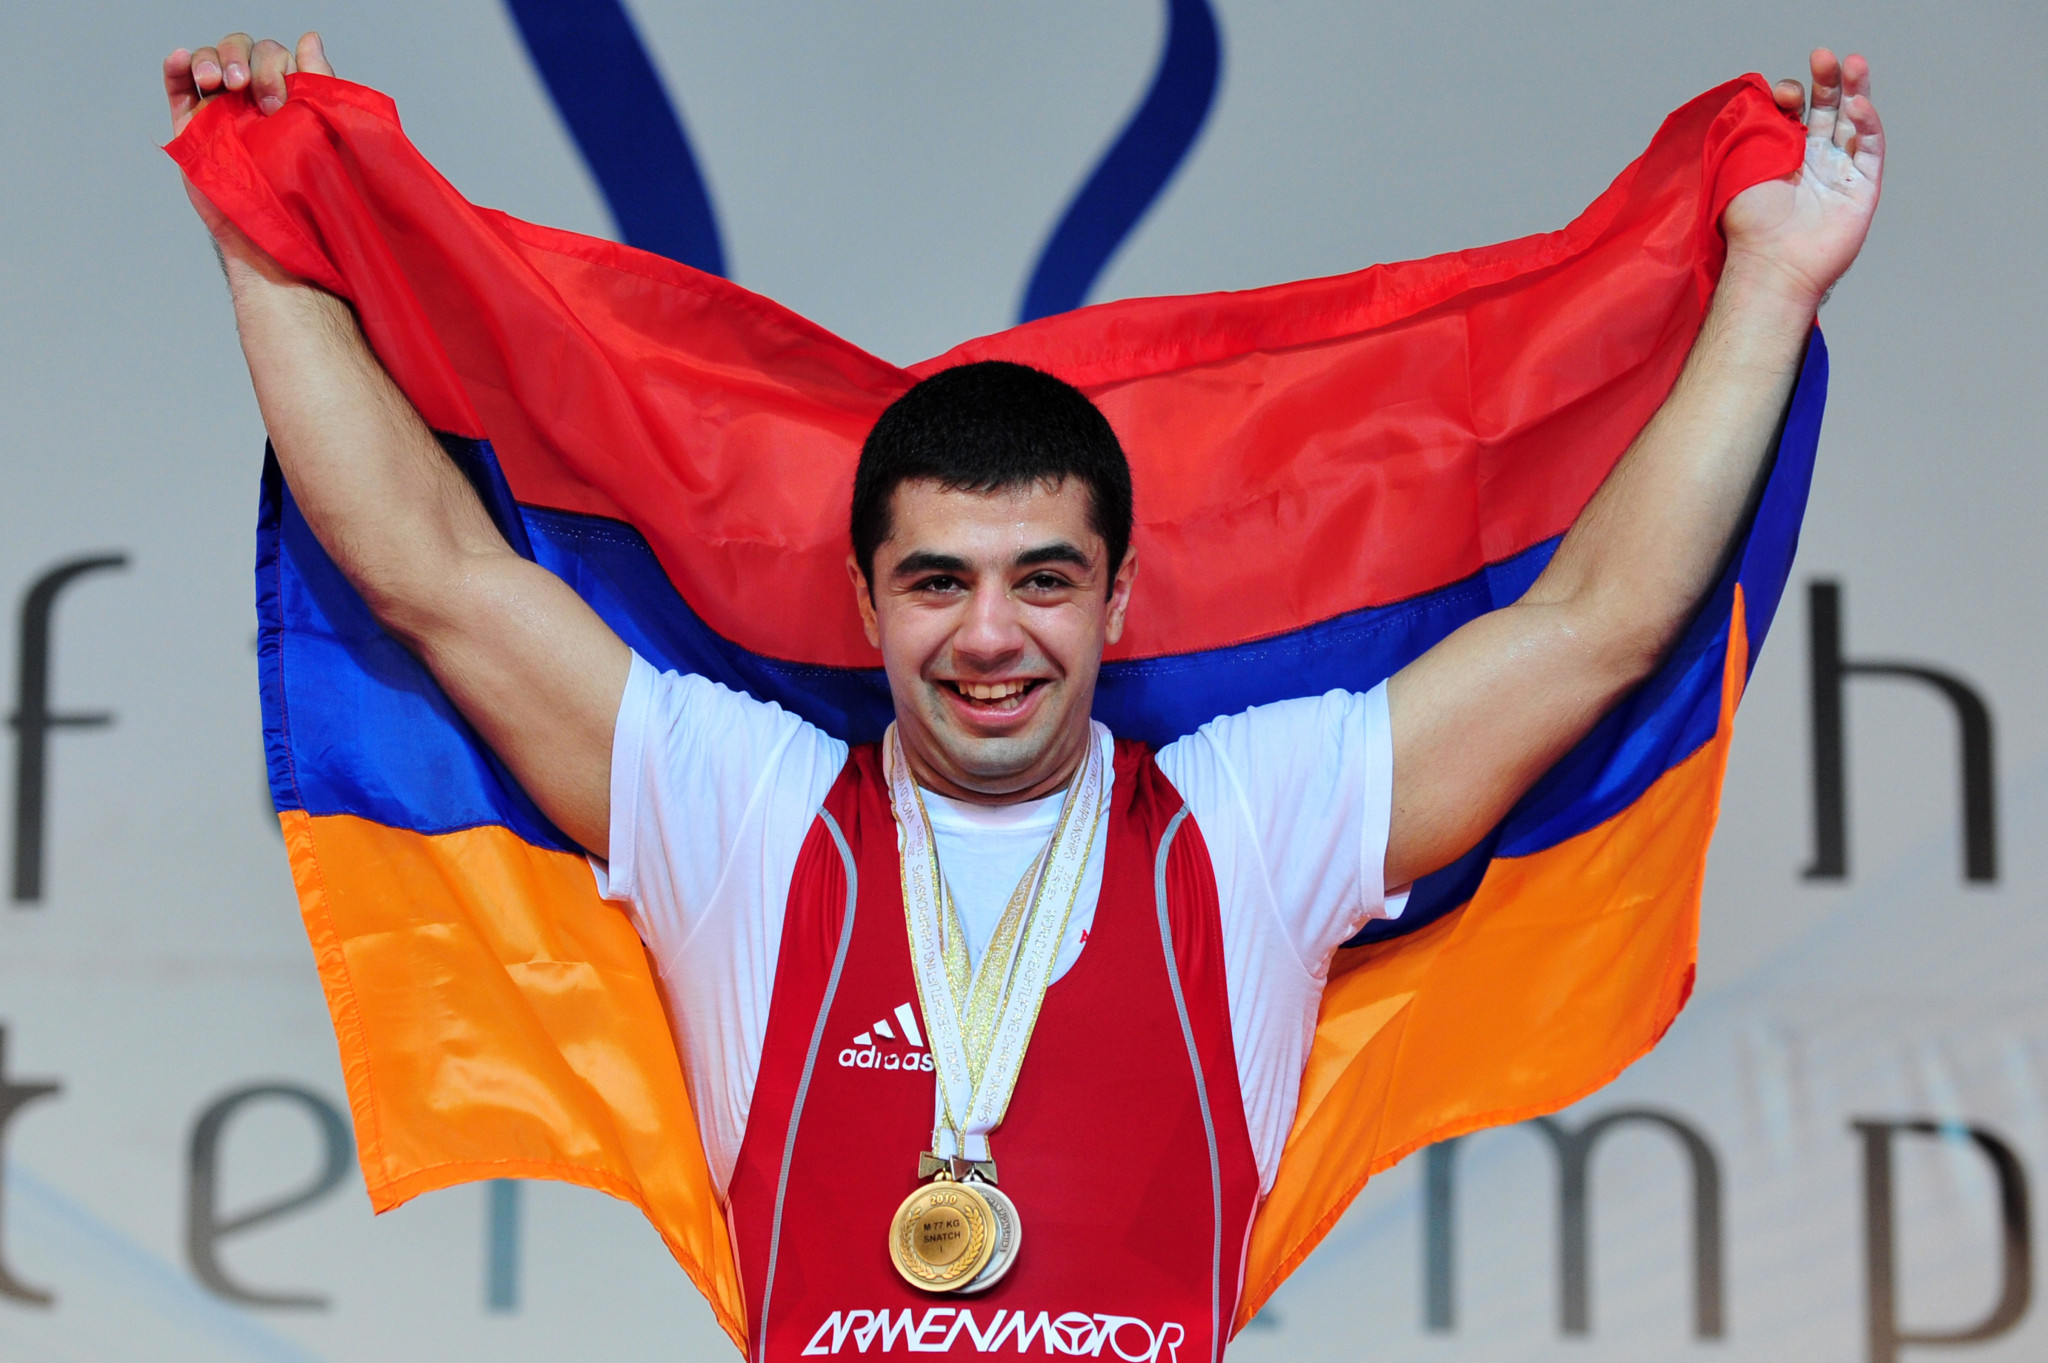 Armenia's Tigran G Martirosyan has also lost an Olympic medal ©Getty Images